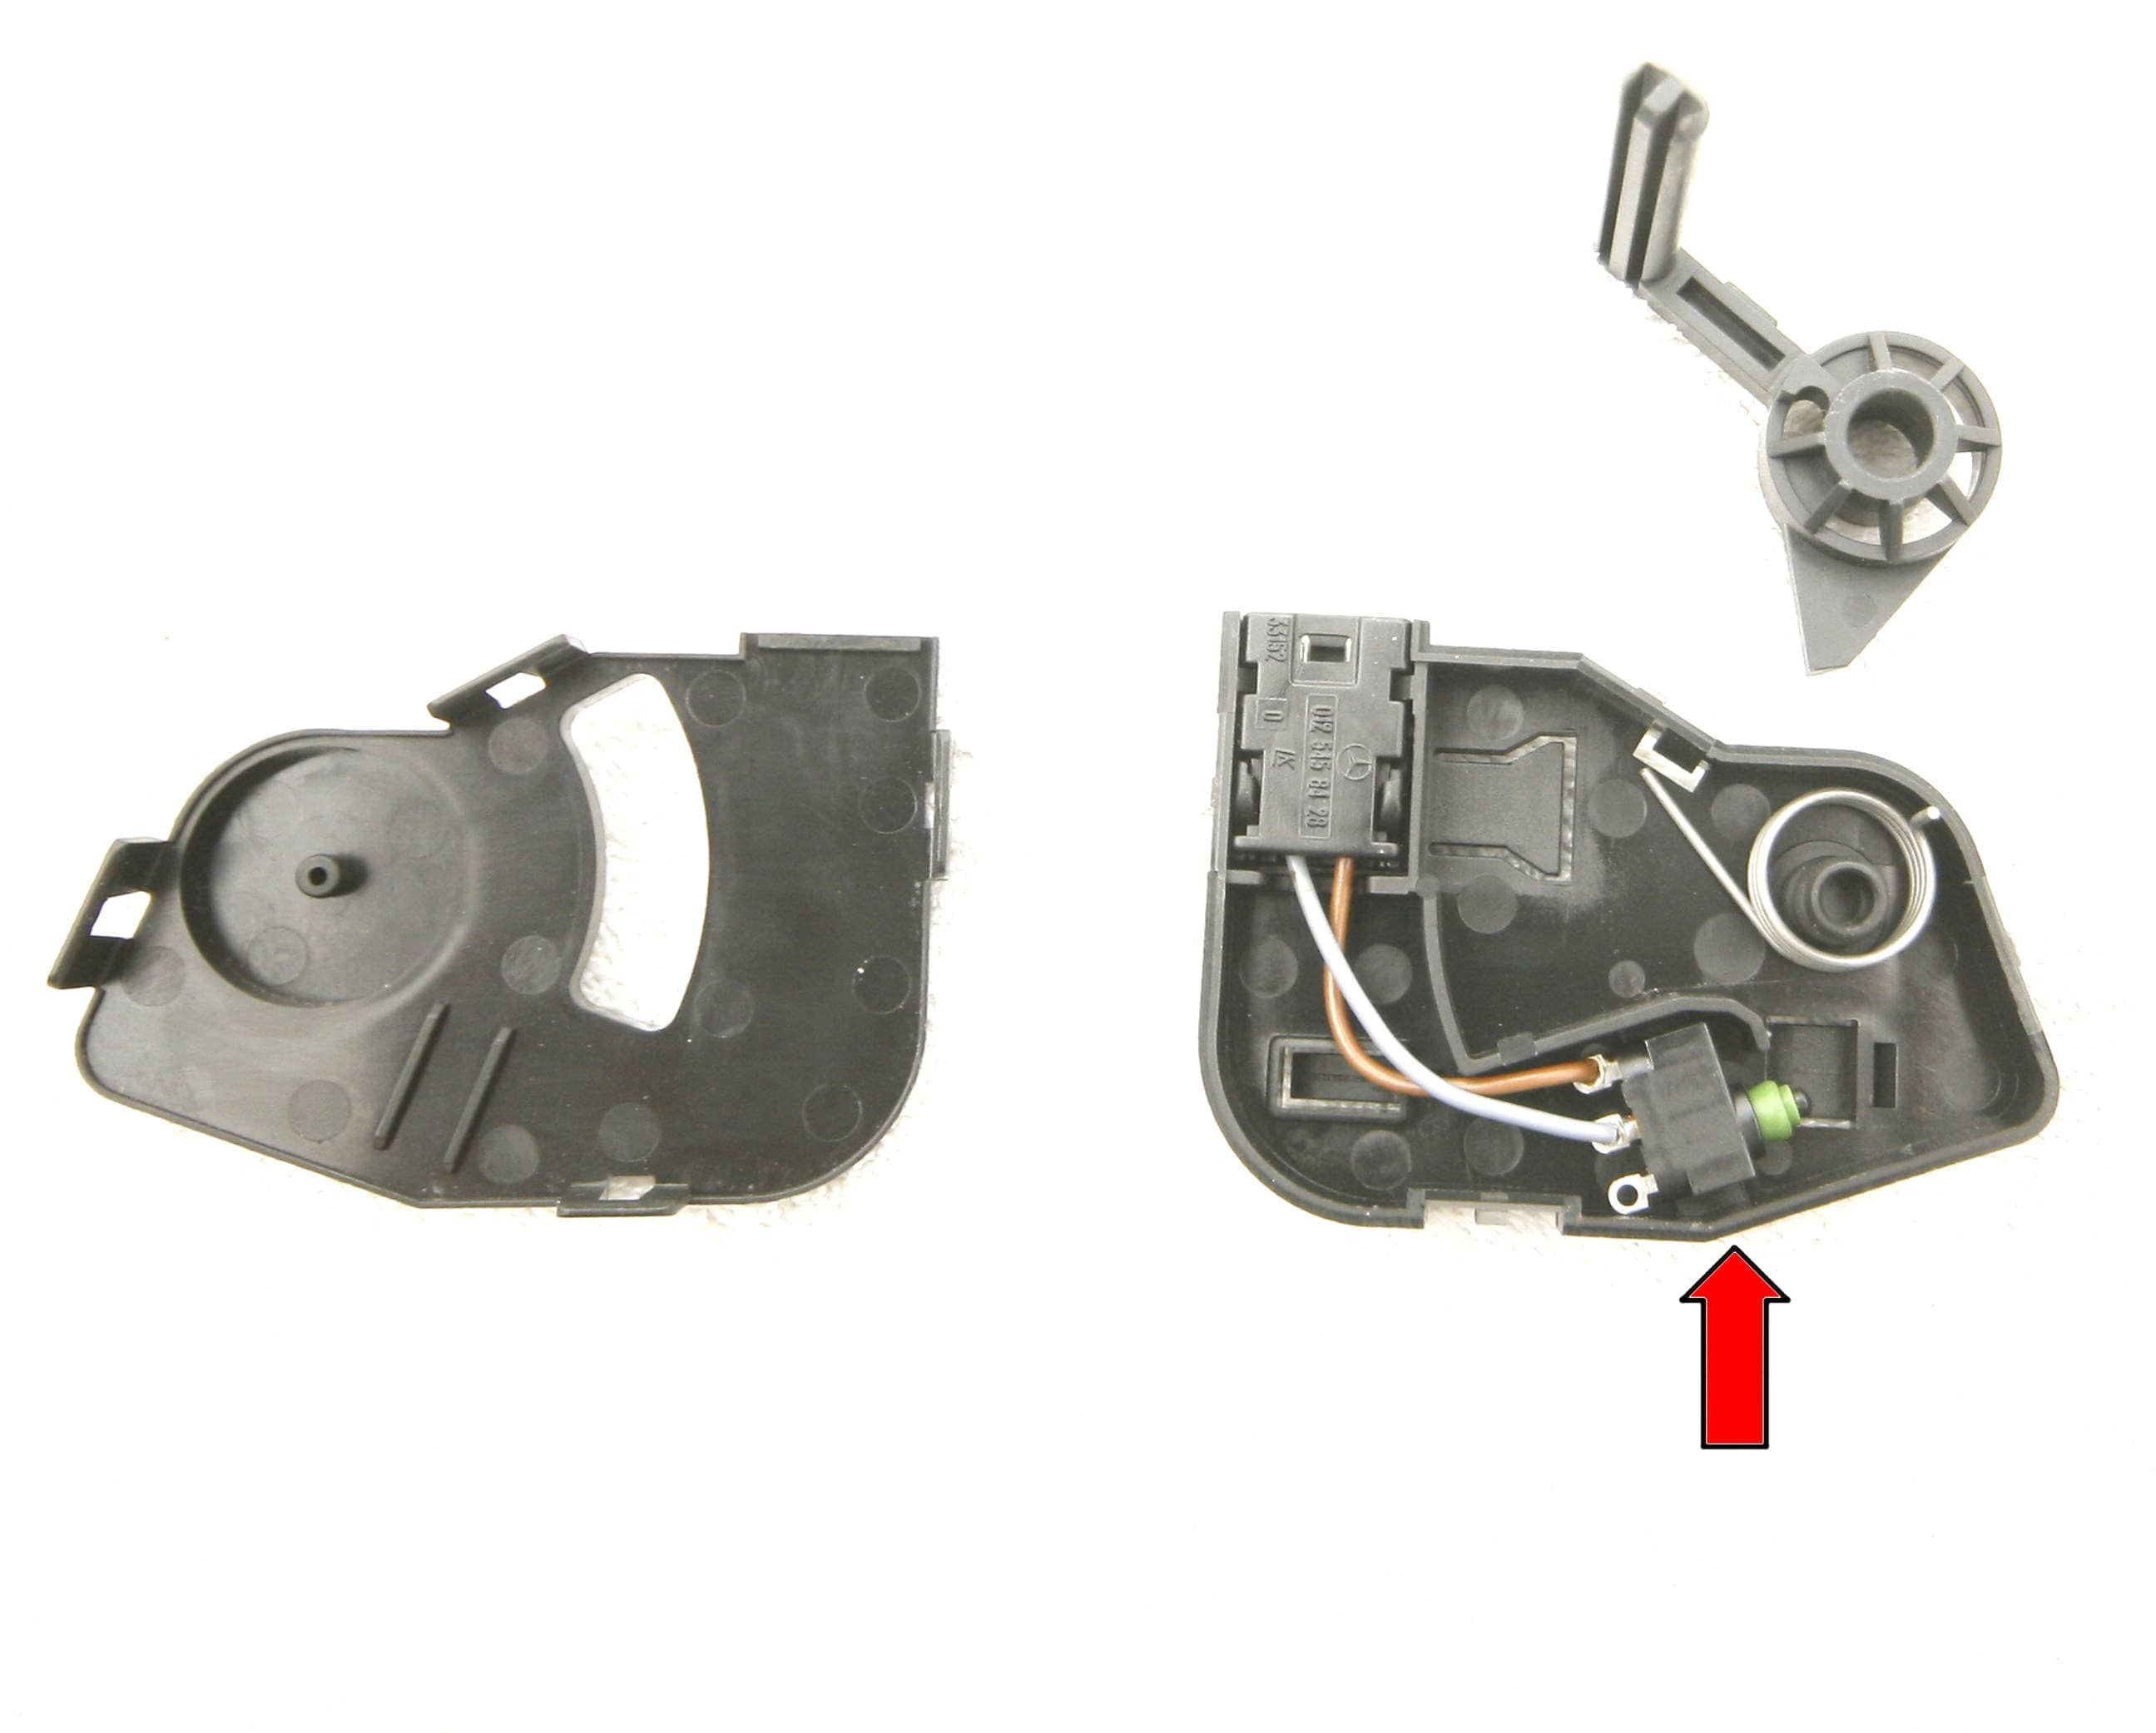 Mercedes Benz Slk 230 Vario Roof Switches Location And Id 1998 Vacuum Pump Wiring Diagram Mercedesbenz Forum Large Image Extra